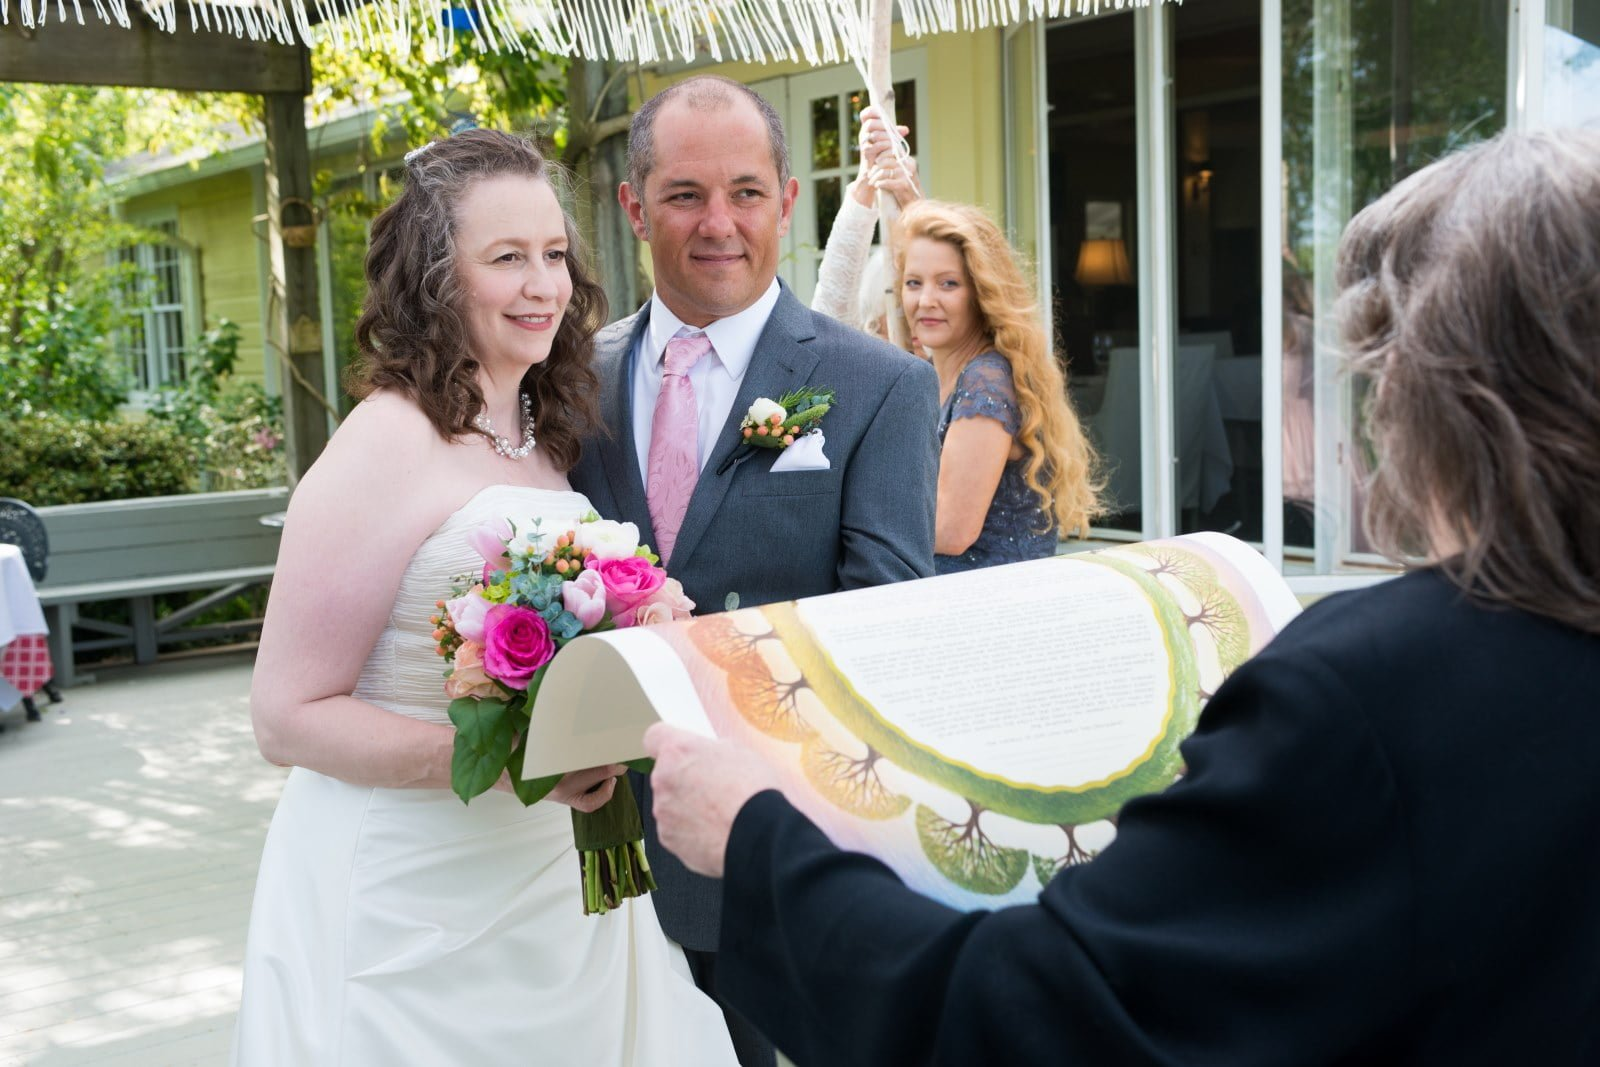 NC Mountain Elopement Package at The Orchard Inn